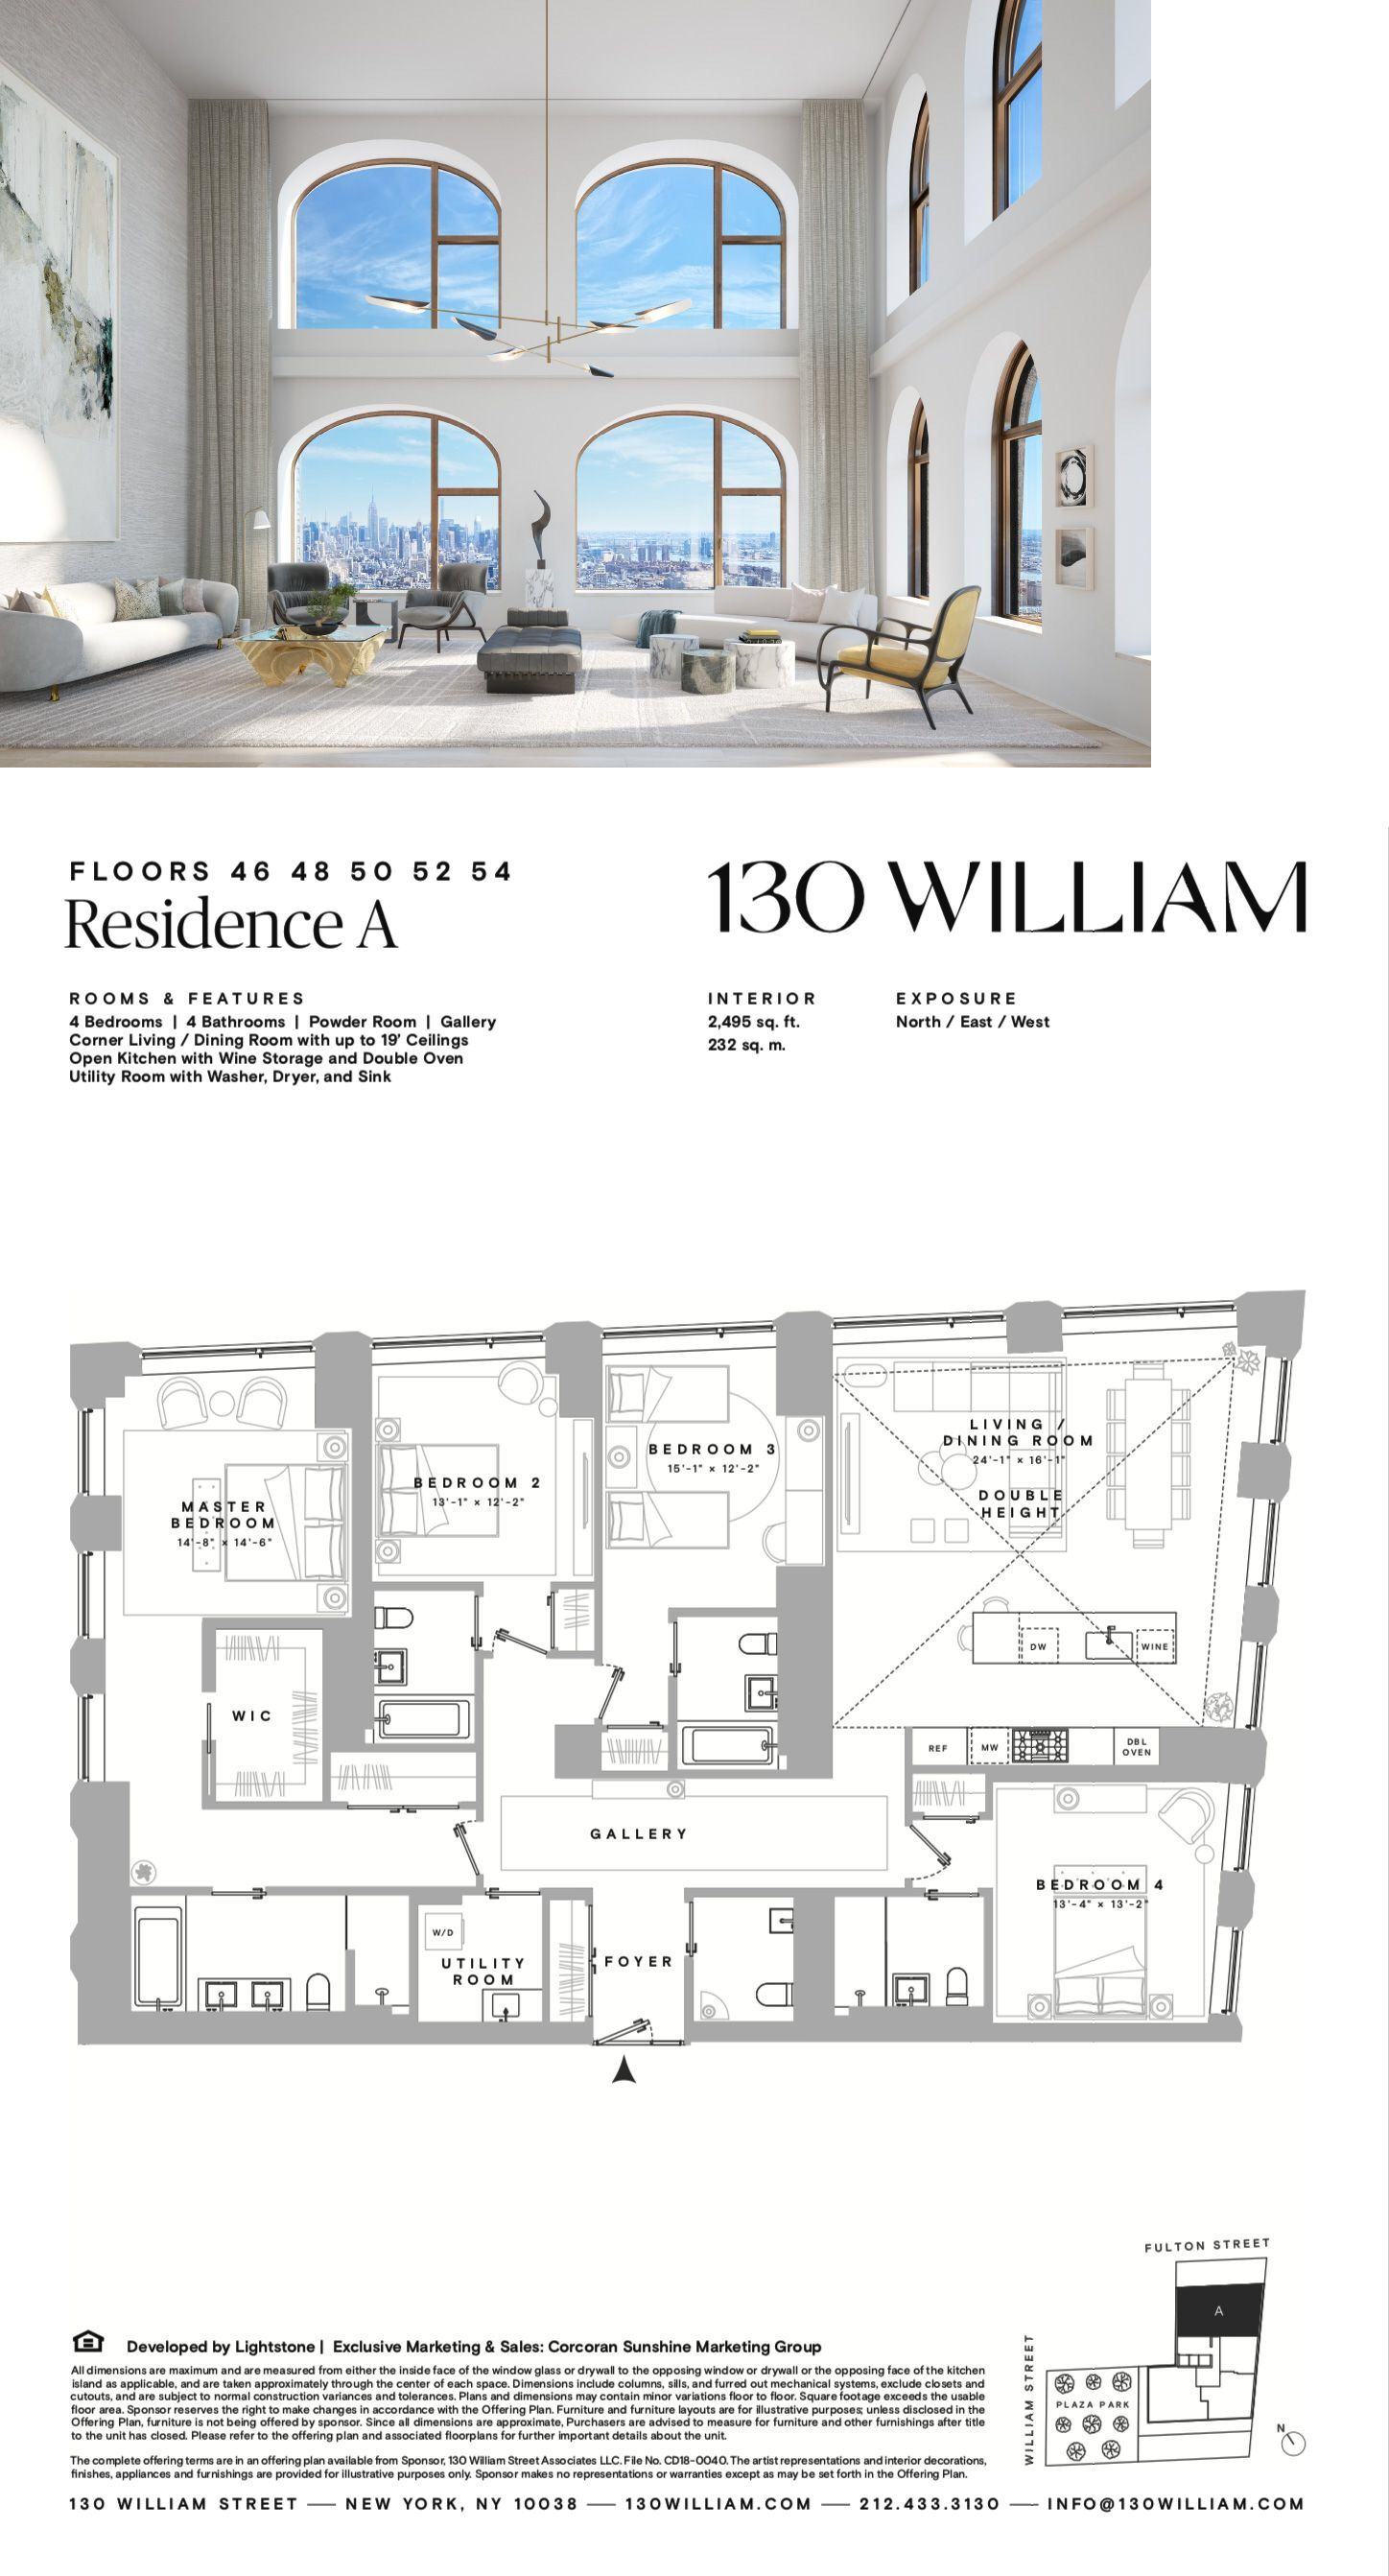 Re 130 William Residence A Penthouse Apartment Floor Plan Luxury Plan Home Building Design